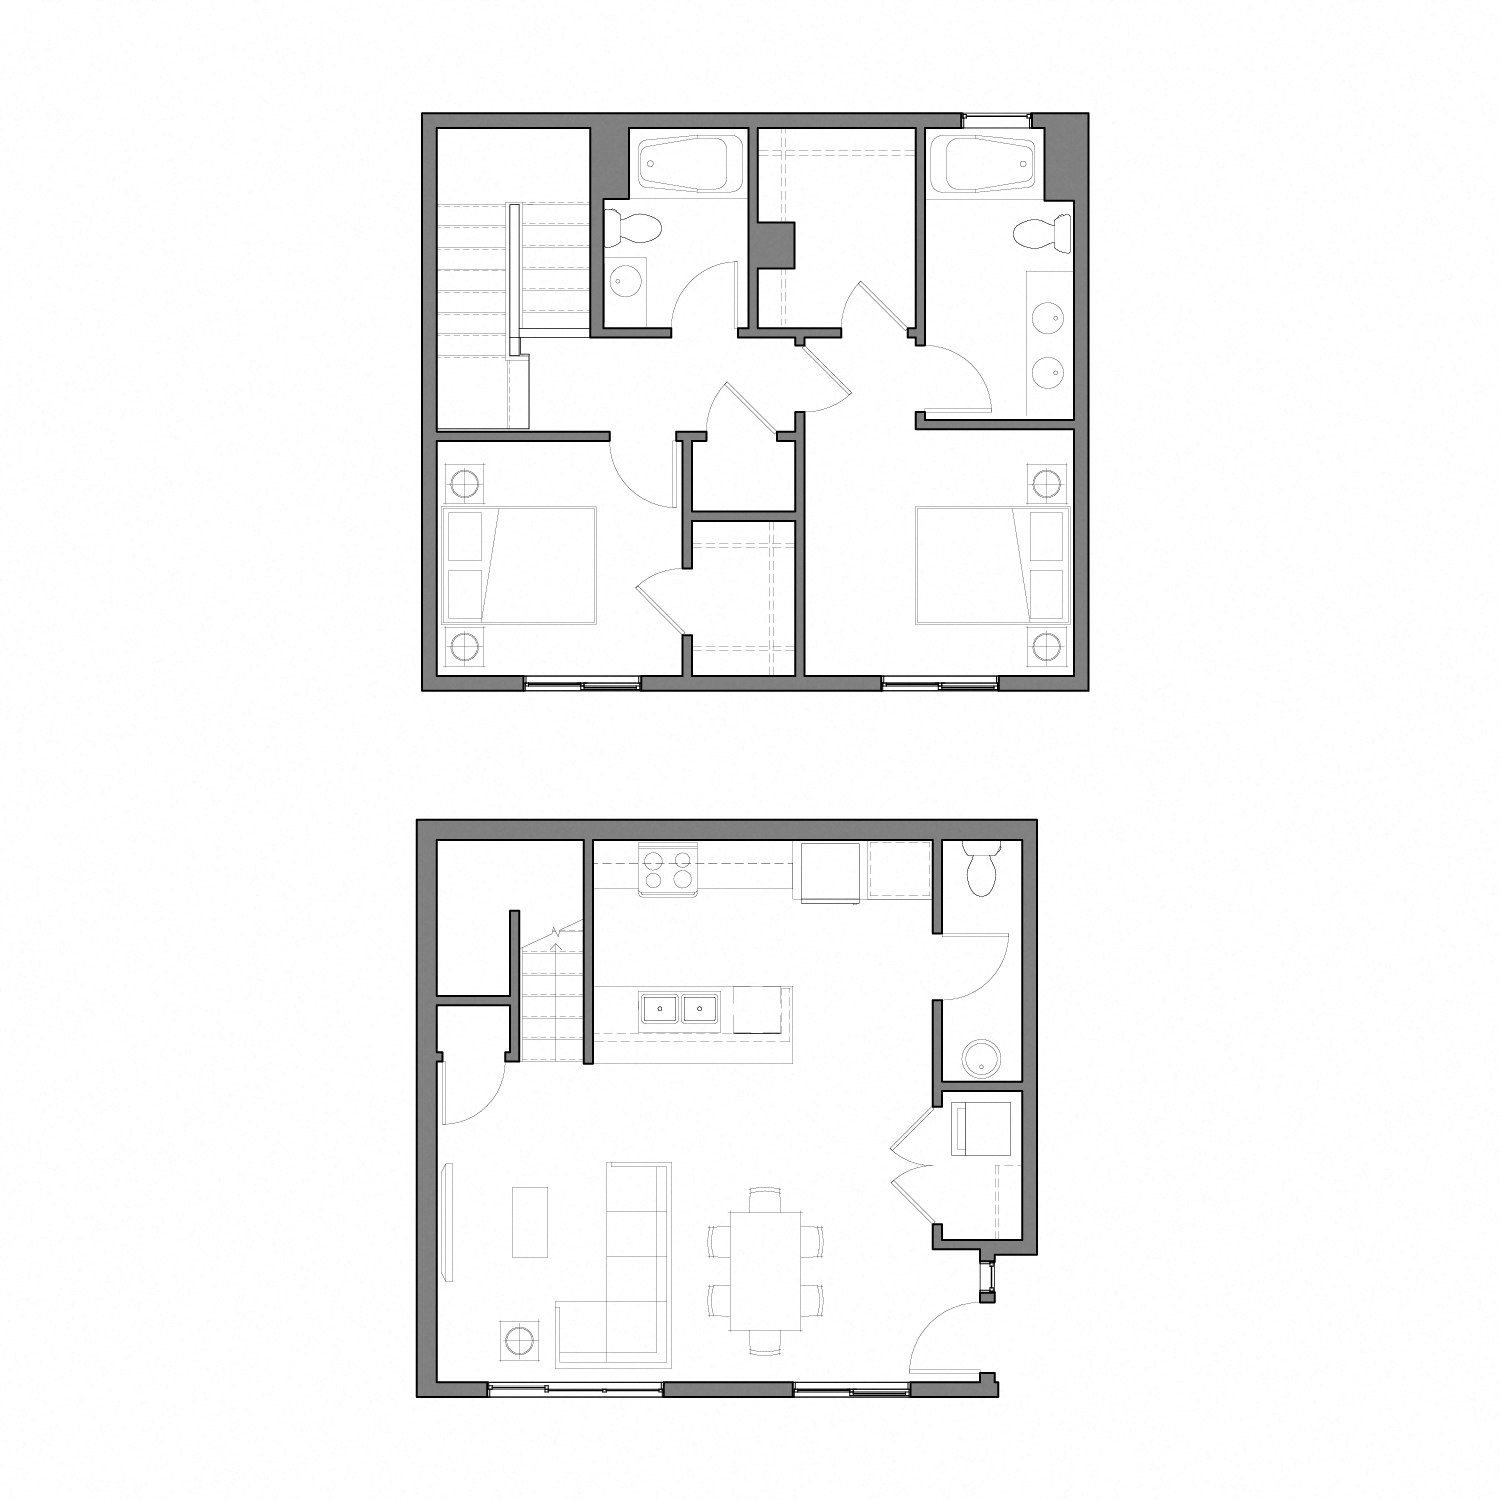 Floor plan diagram for a two story apartment with two bedrooms, two and a half bathrooms, and an open kitchen dining and living space